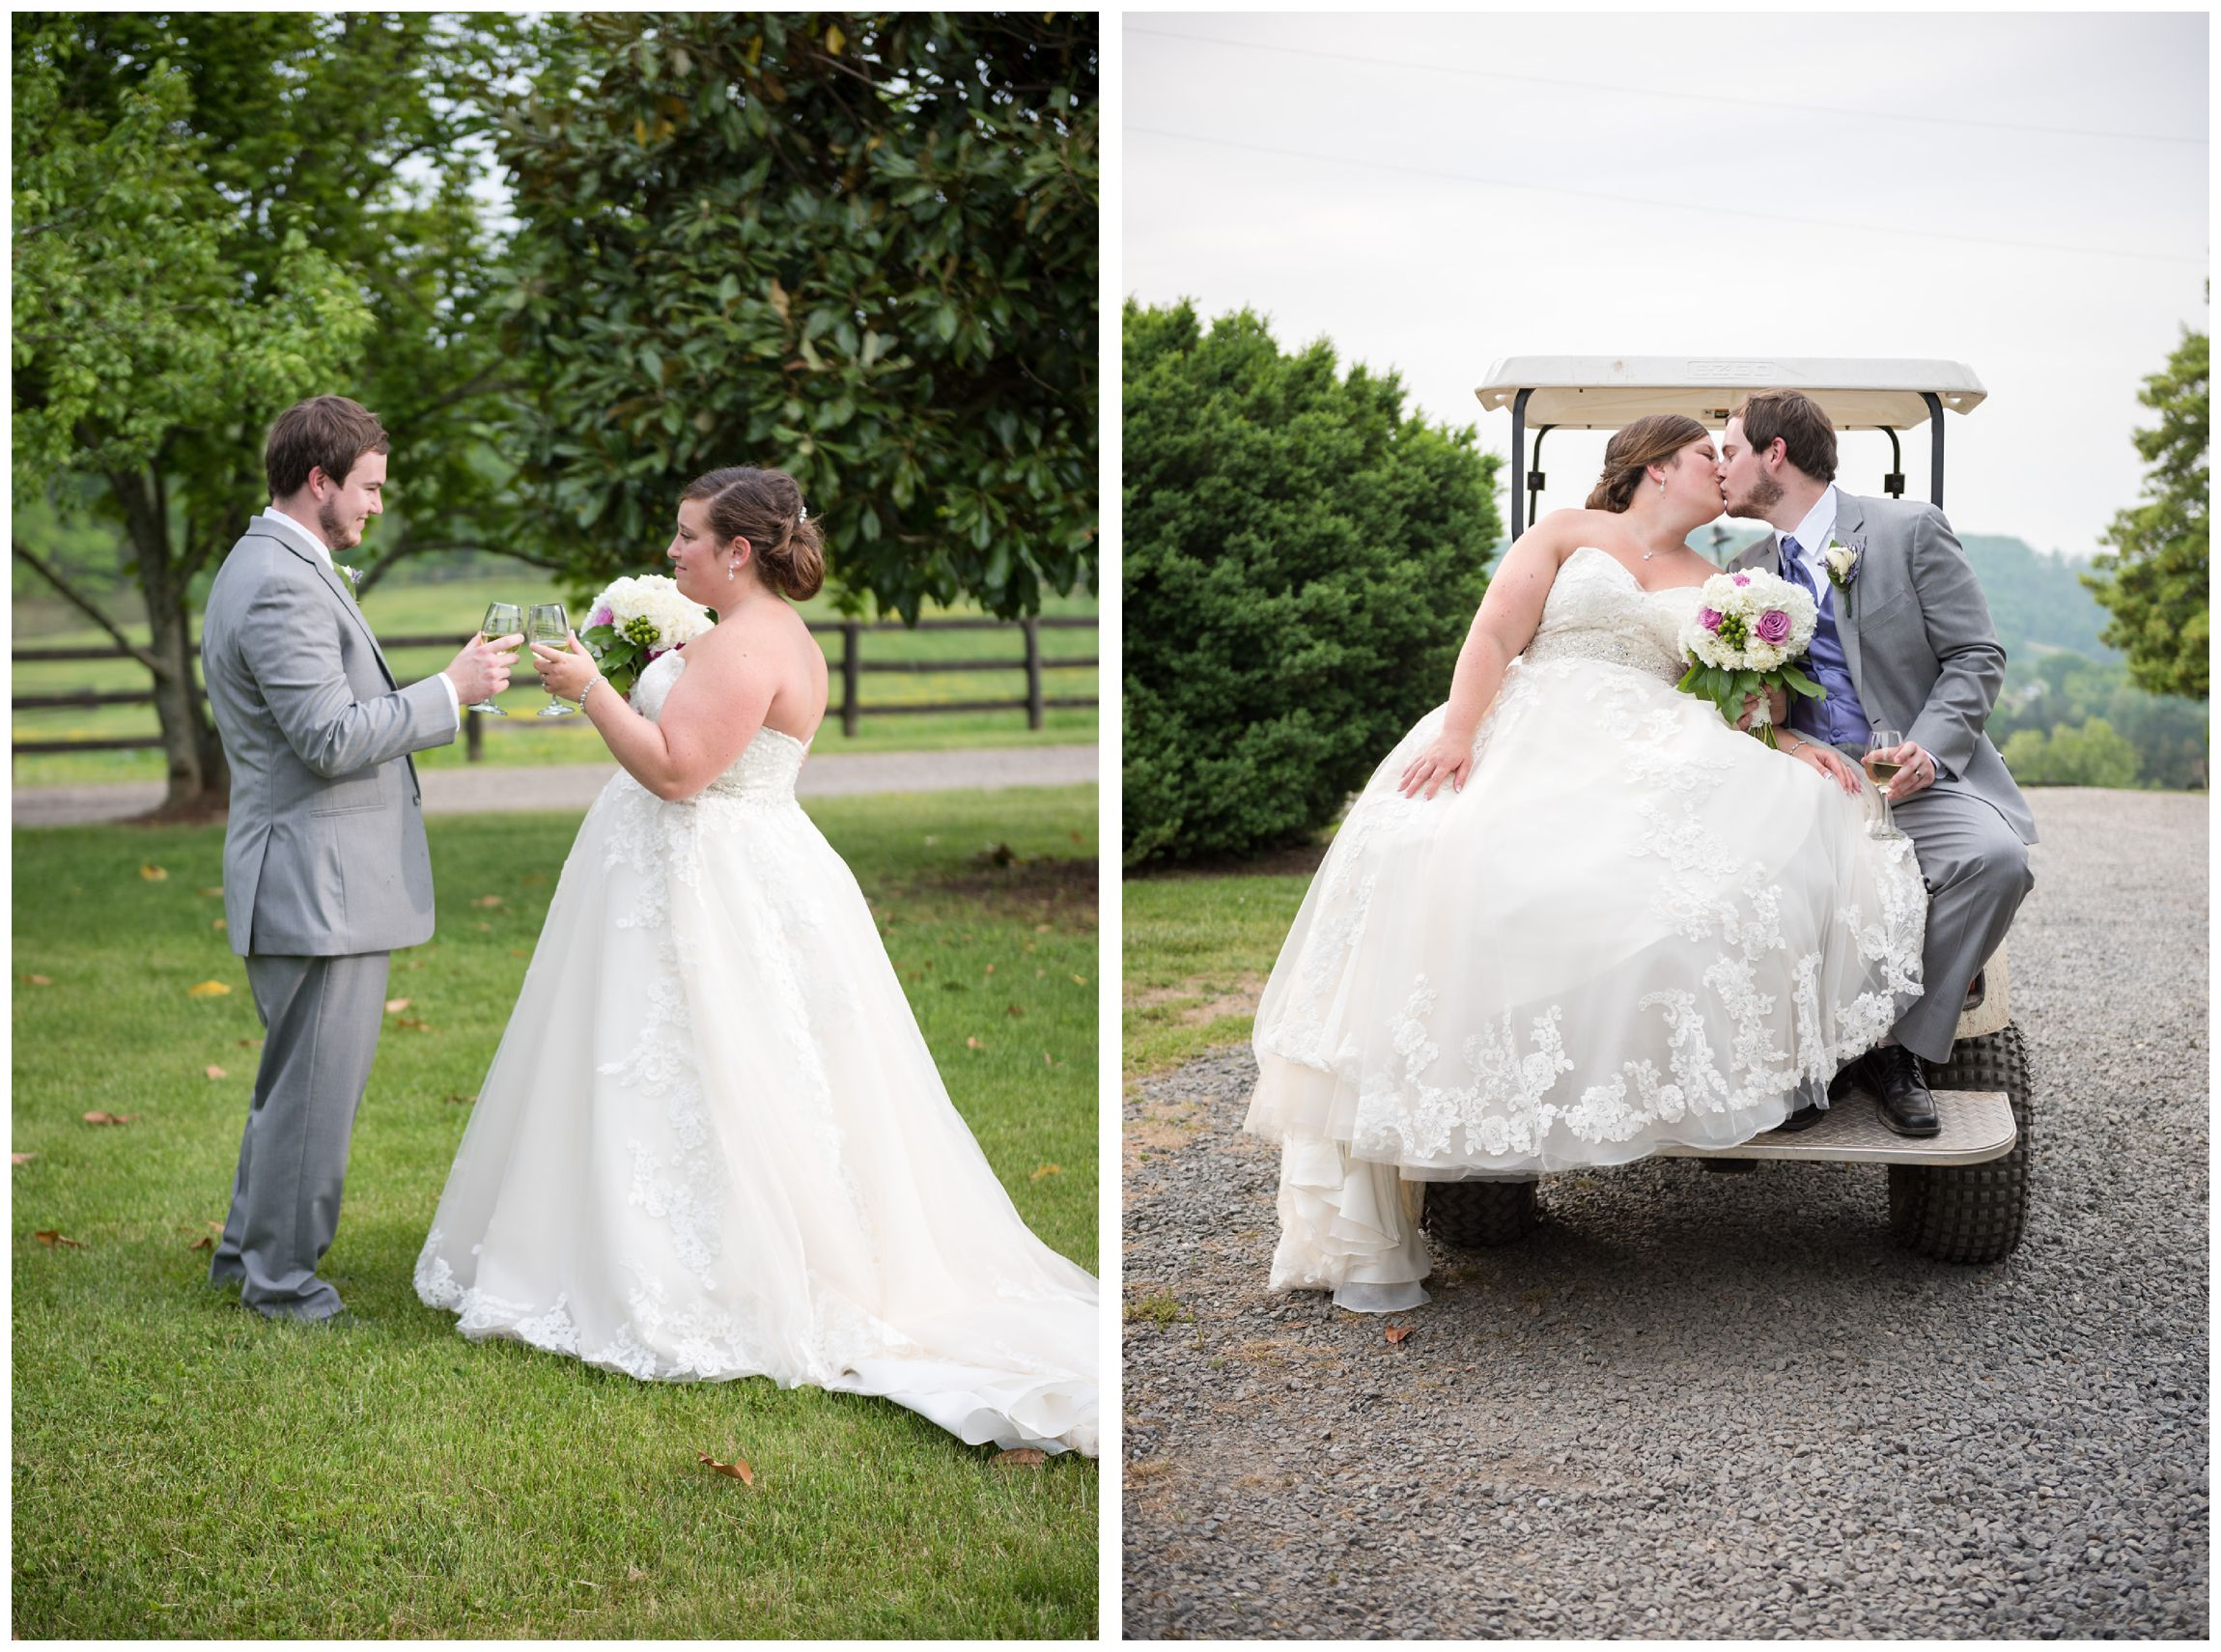 bride and groom toasting and riding golf cart to reception at Wolftrap Farm